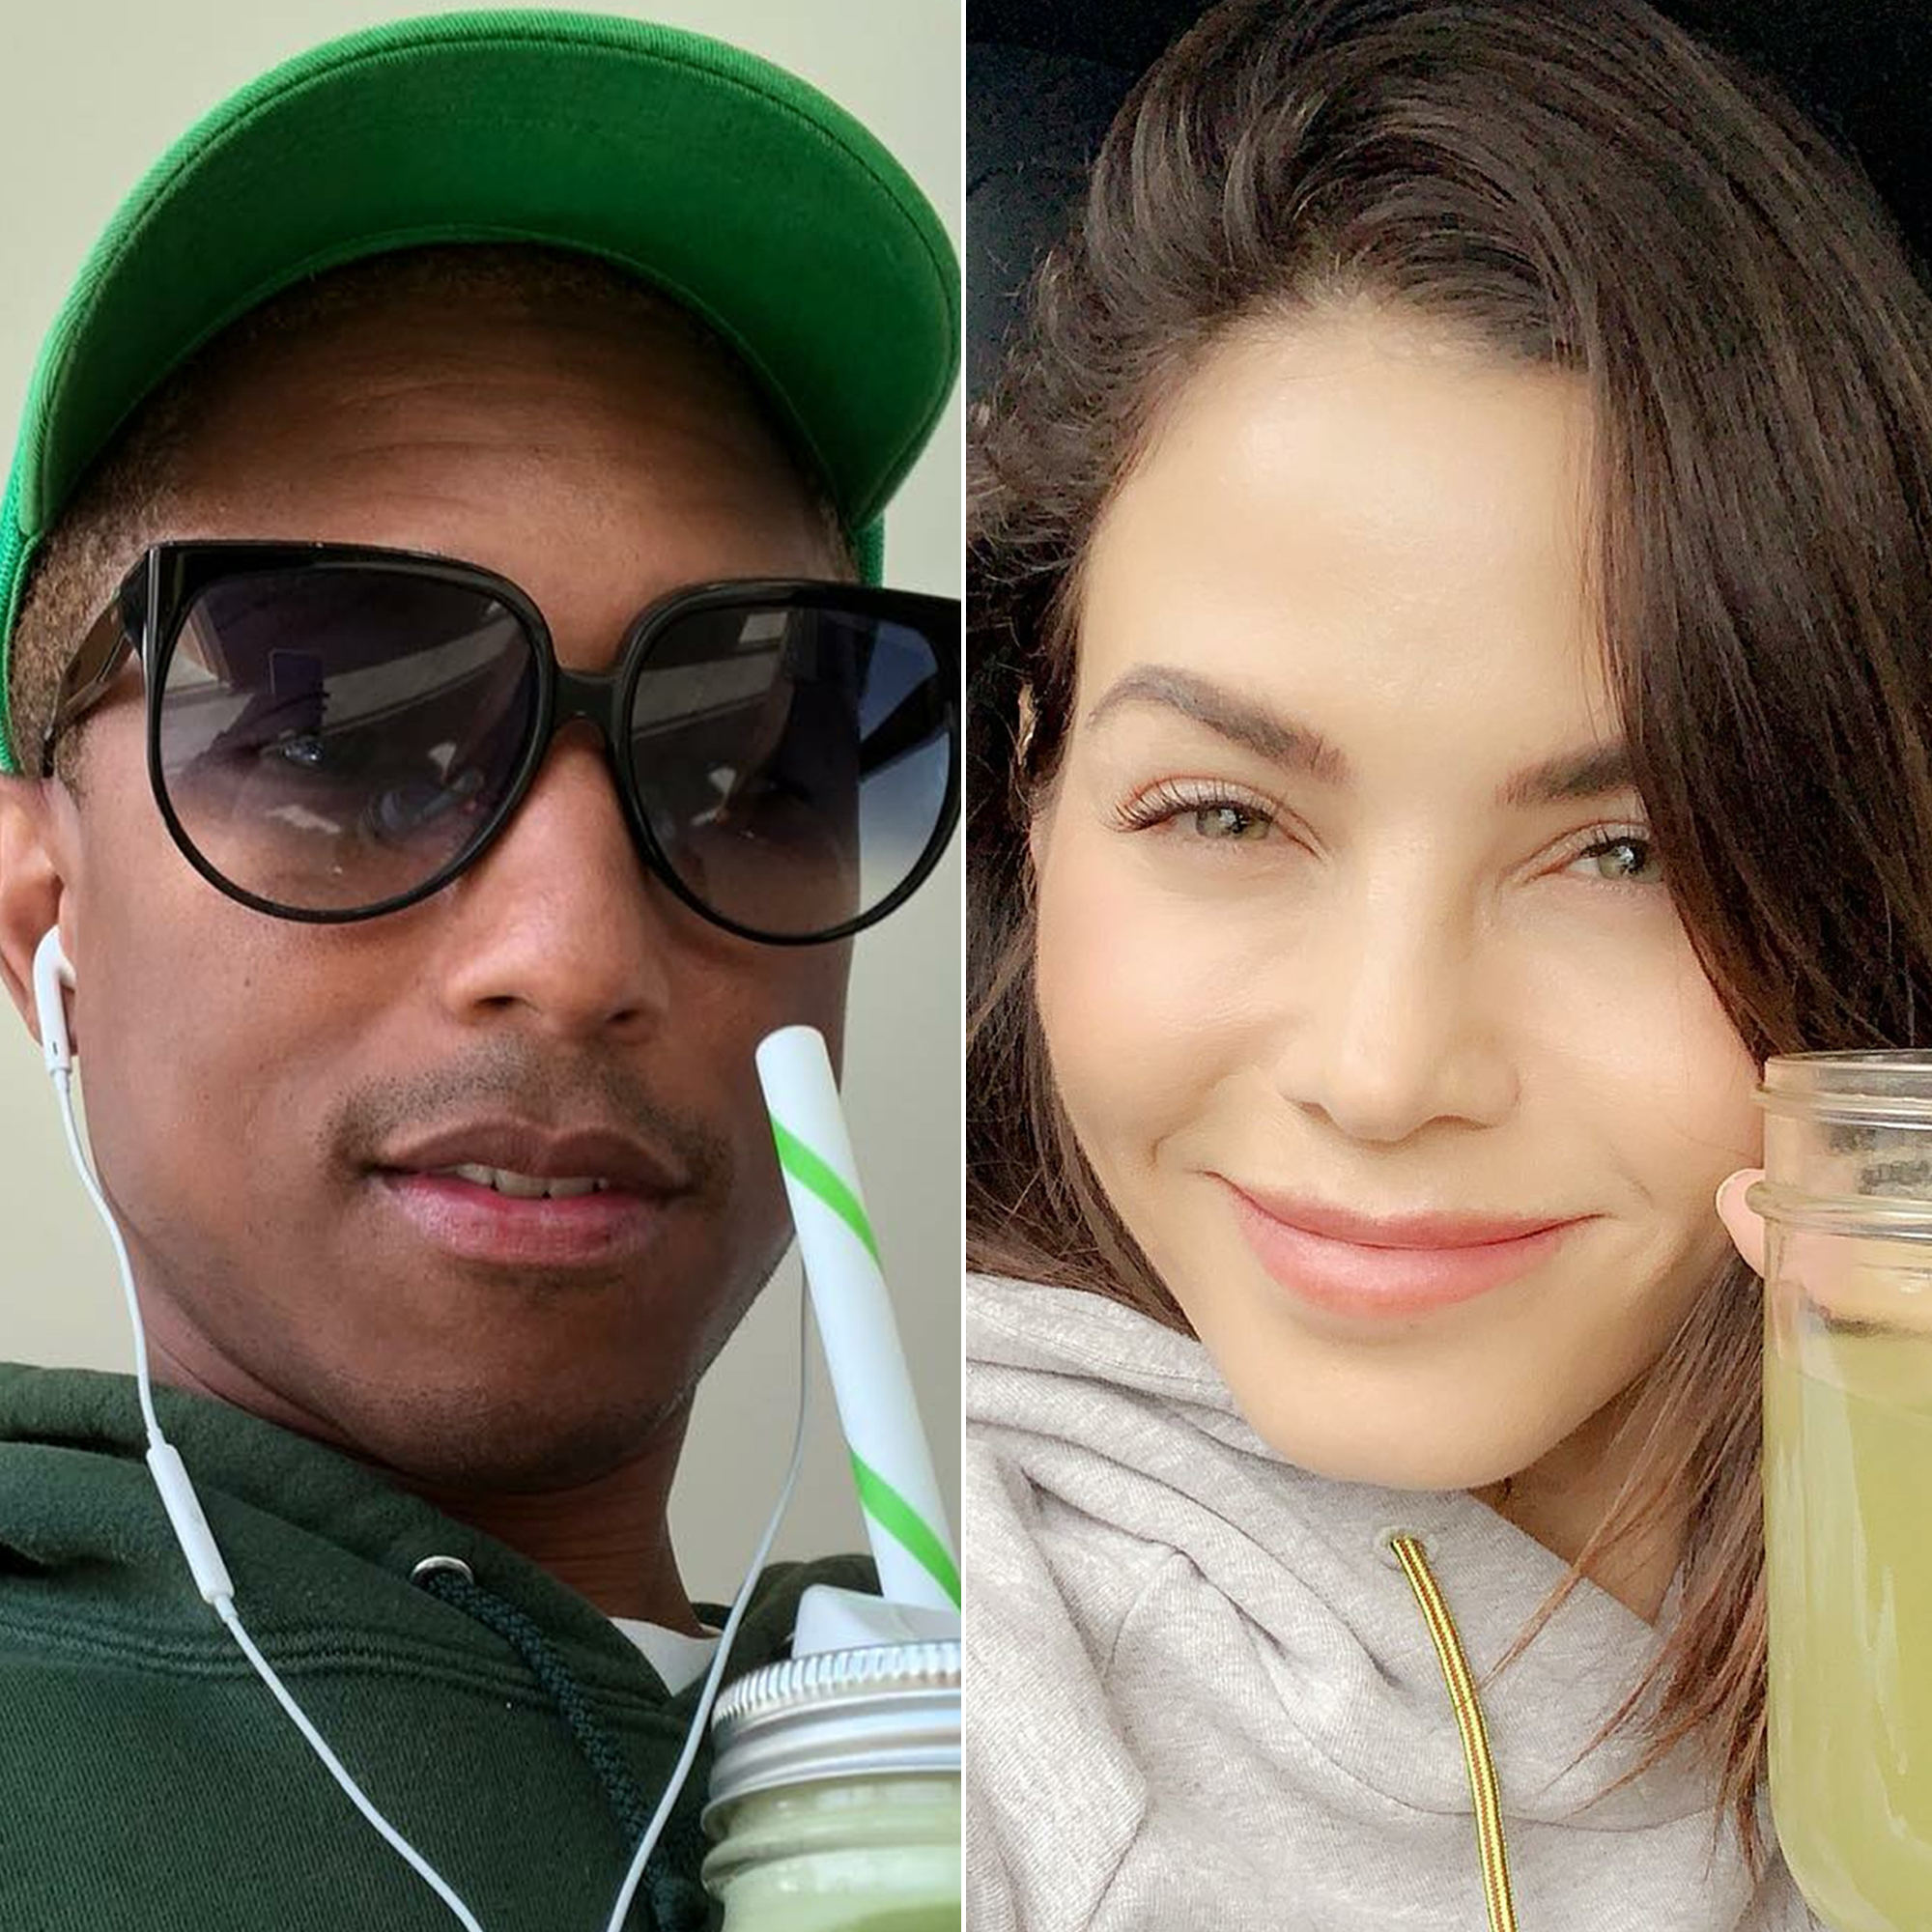 Celebrities Who Swear by Celery Juice: Pharrell Williams, Jenna Dewan and More Drink the Wellness Trend - Pharrell Williams and Jenna Dewan with their celery juice.